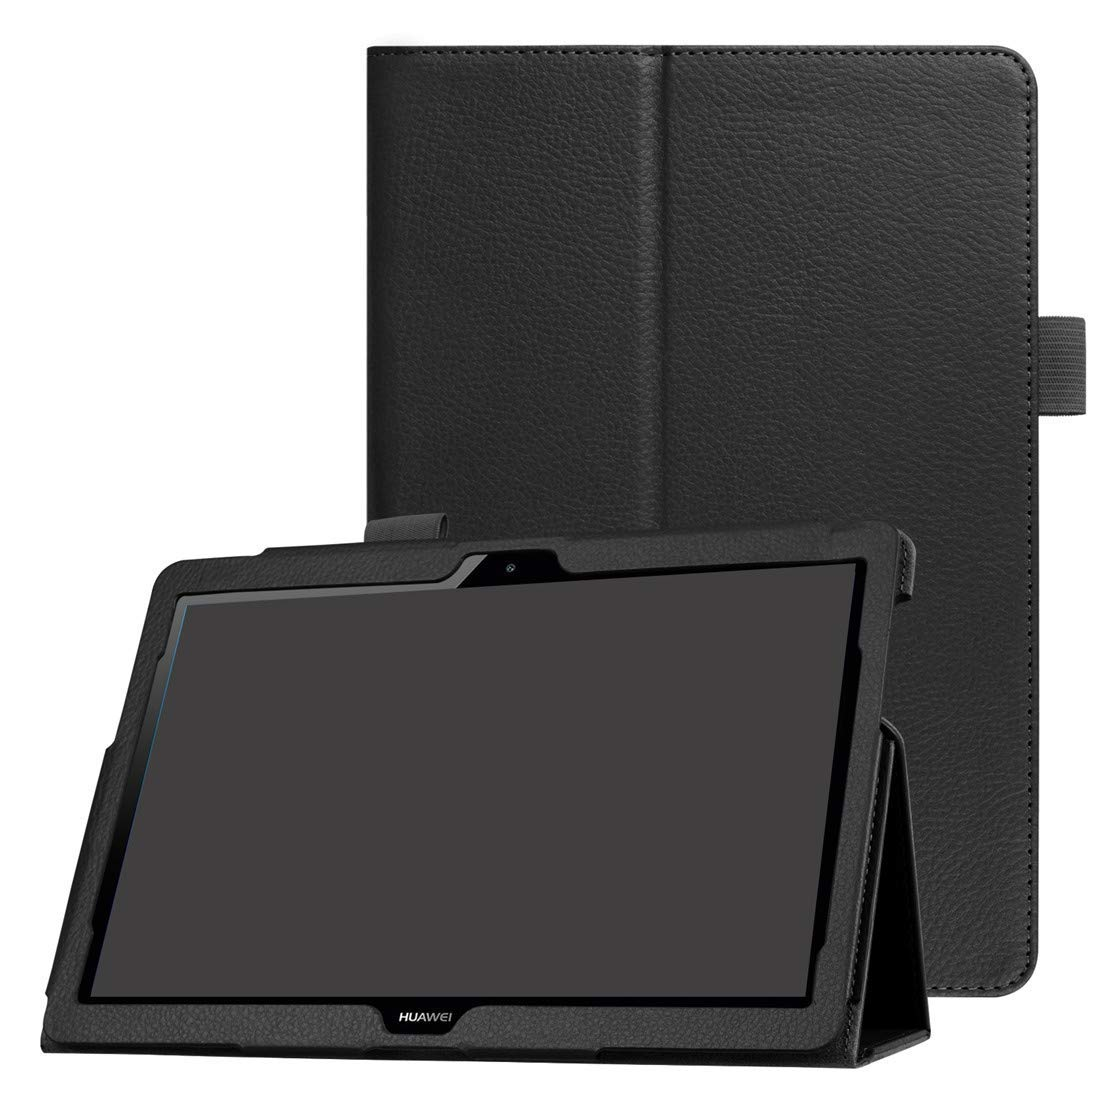 9.6 Leeboss Huawei MediaPad T3 10 Case Huawei T3 10 9.6 Inch Tablet Case Slim Lightweight Smart Shell with Stand Protective Cover for Huawei MediaPad T3 10 - Black